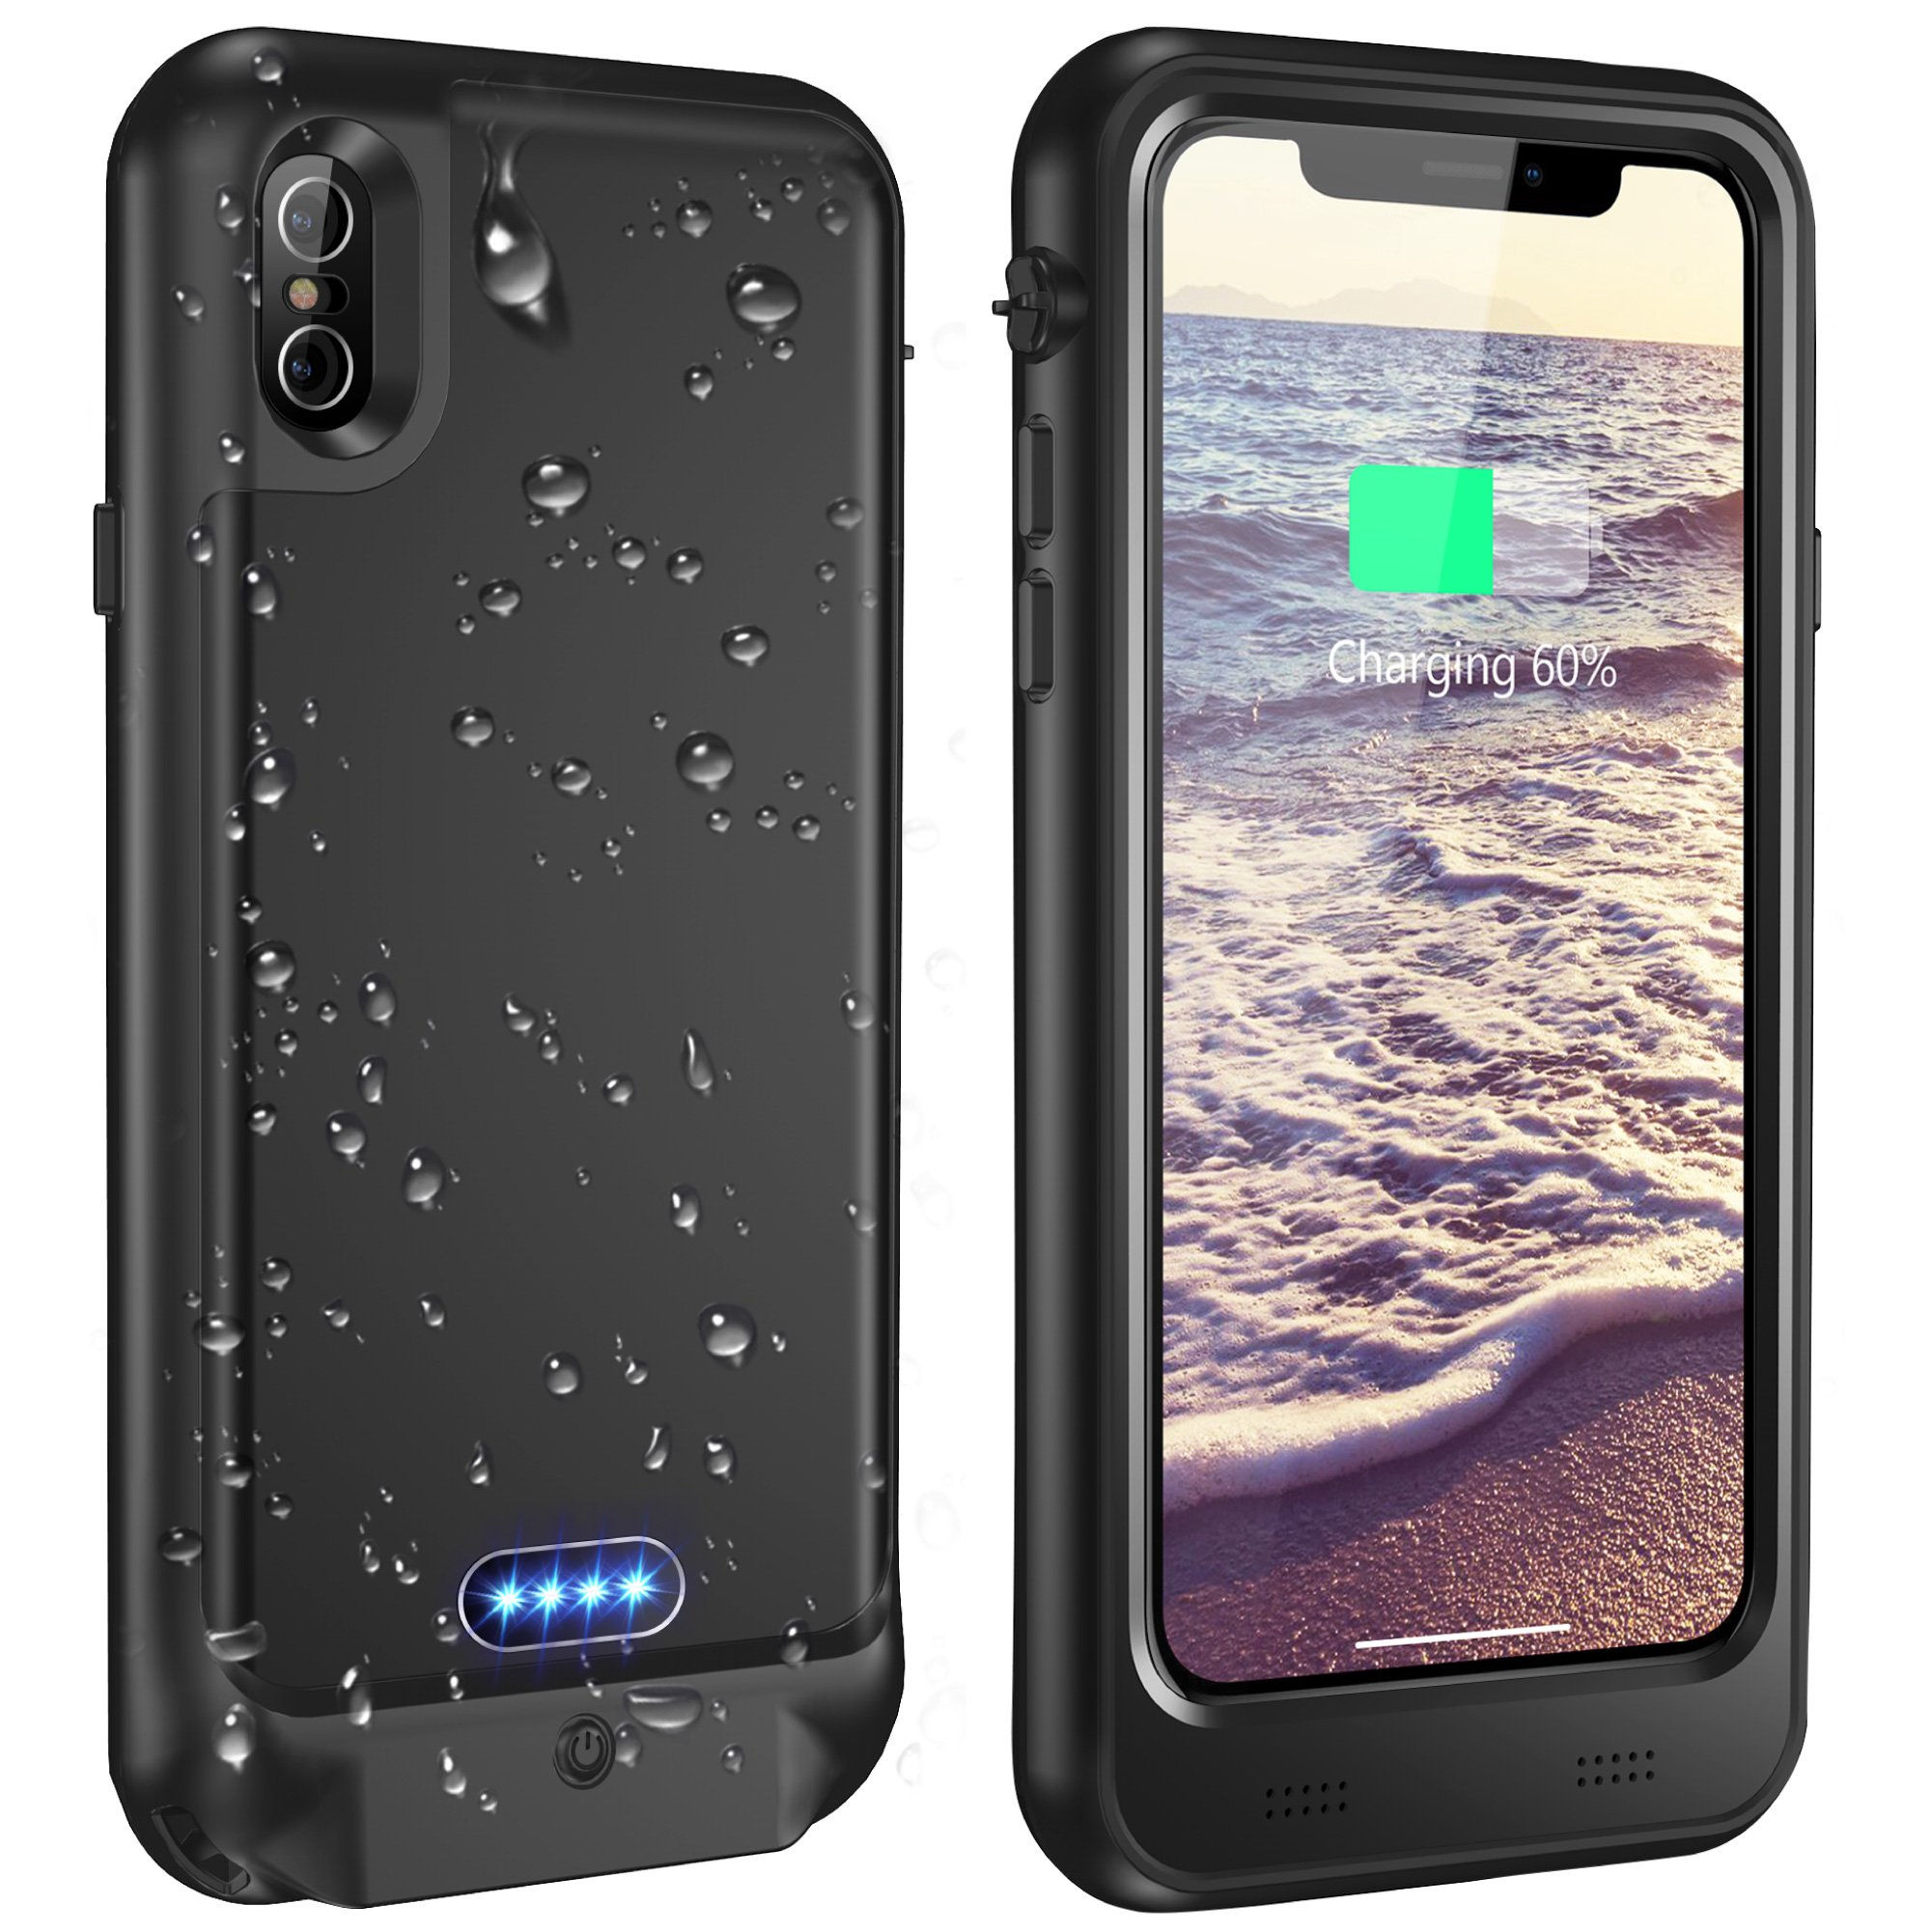 Vapesoon iPhone X/iPhone Xs Waterproof Battery Case Qi Wireless Charging Compatible 5.8-inch 3600mAh Slim Rechargeable Extended Protective Portable Charger Case for iPhone X/iPhone Xs - Black by Vapesoon